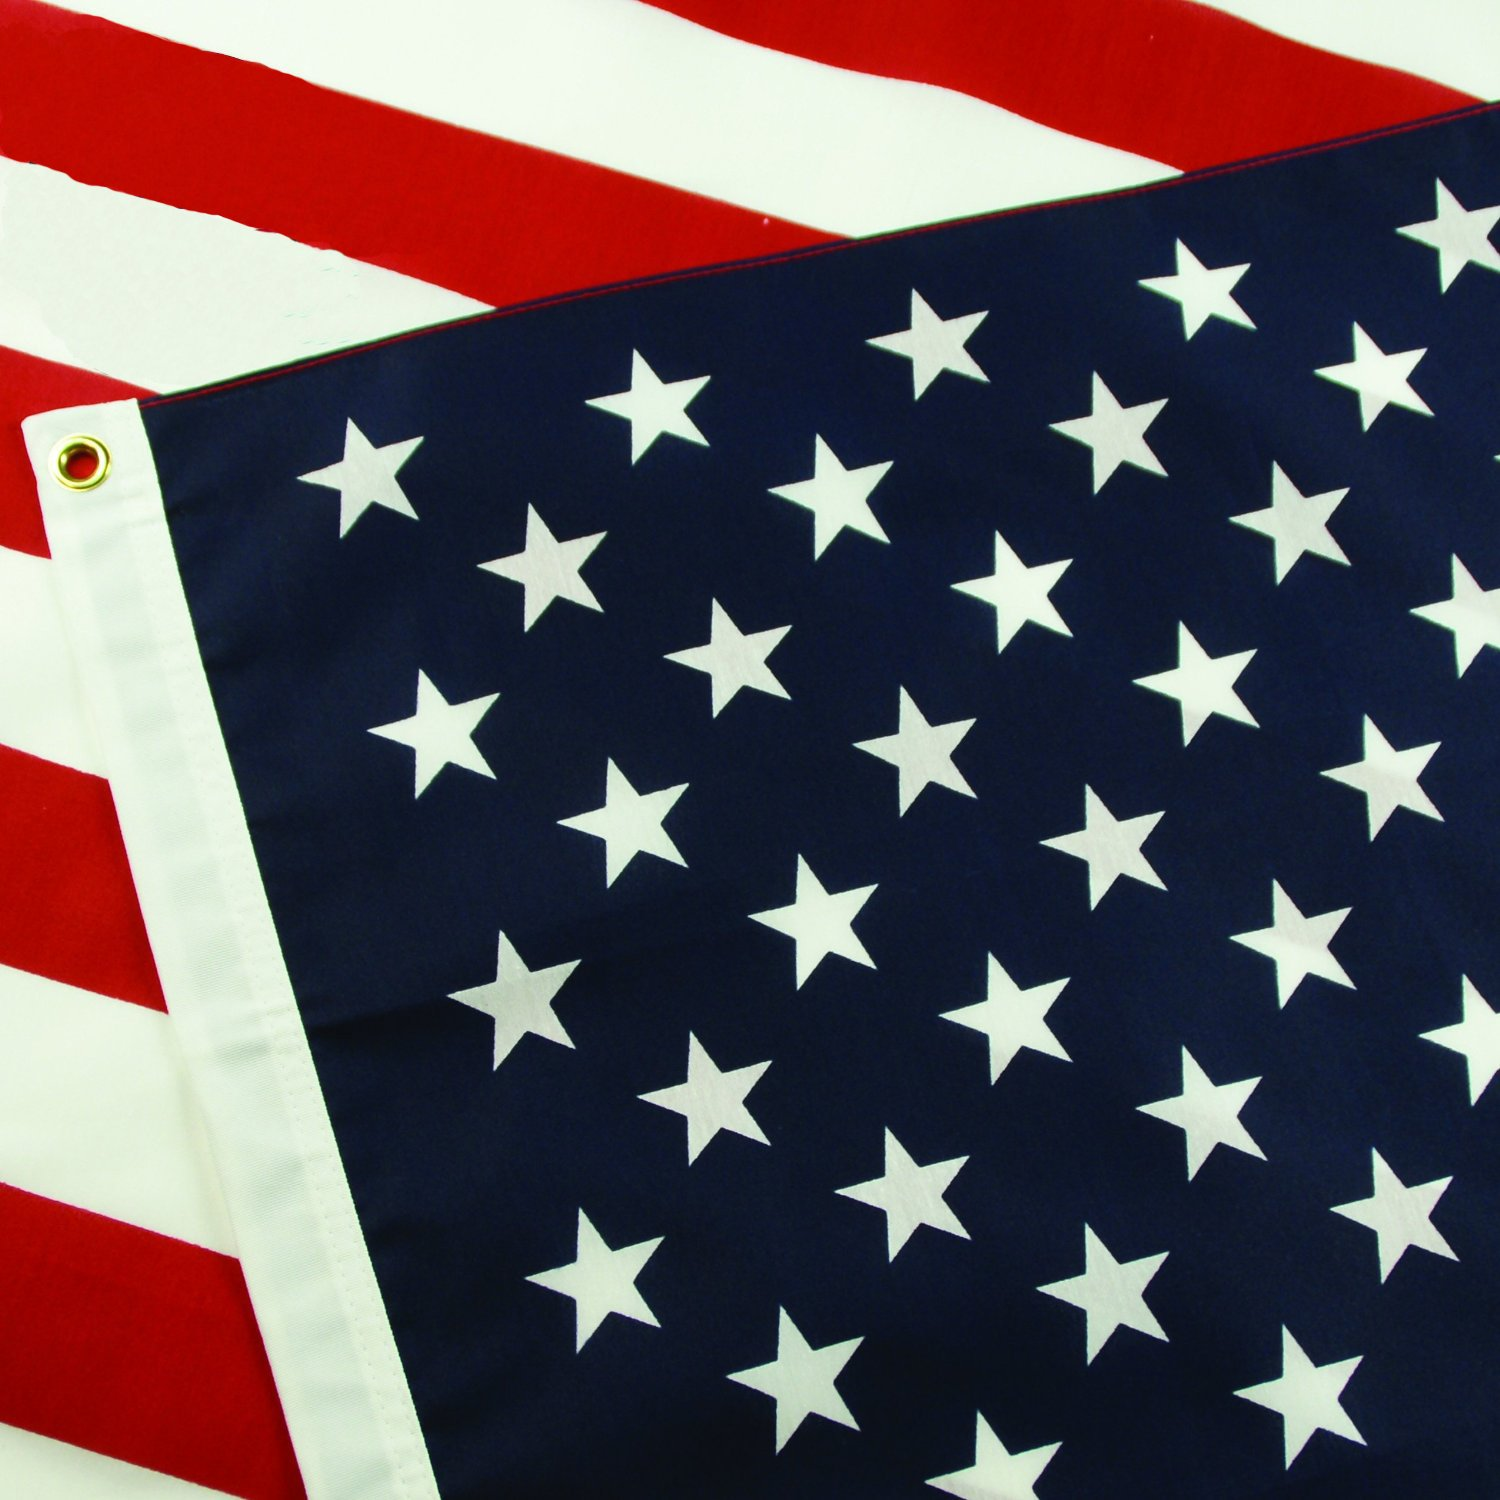 American Flag: 100% Made in USA Certified. 3x5 ft